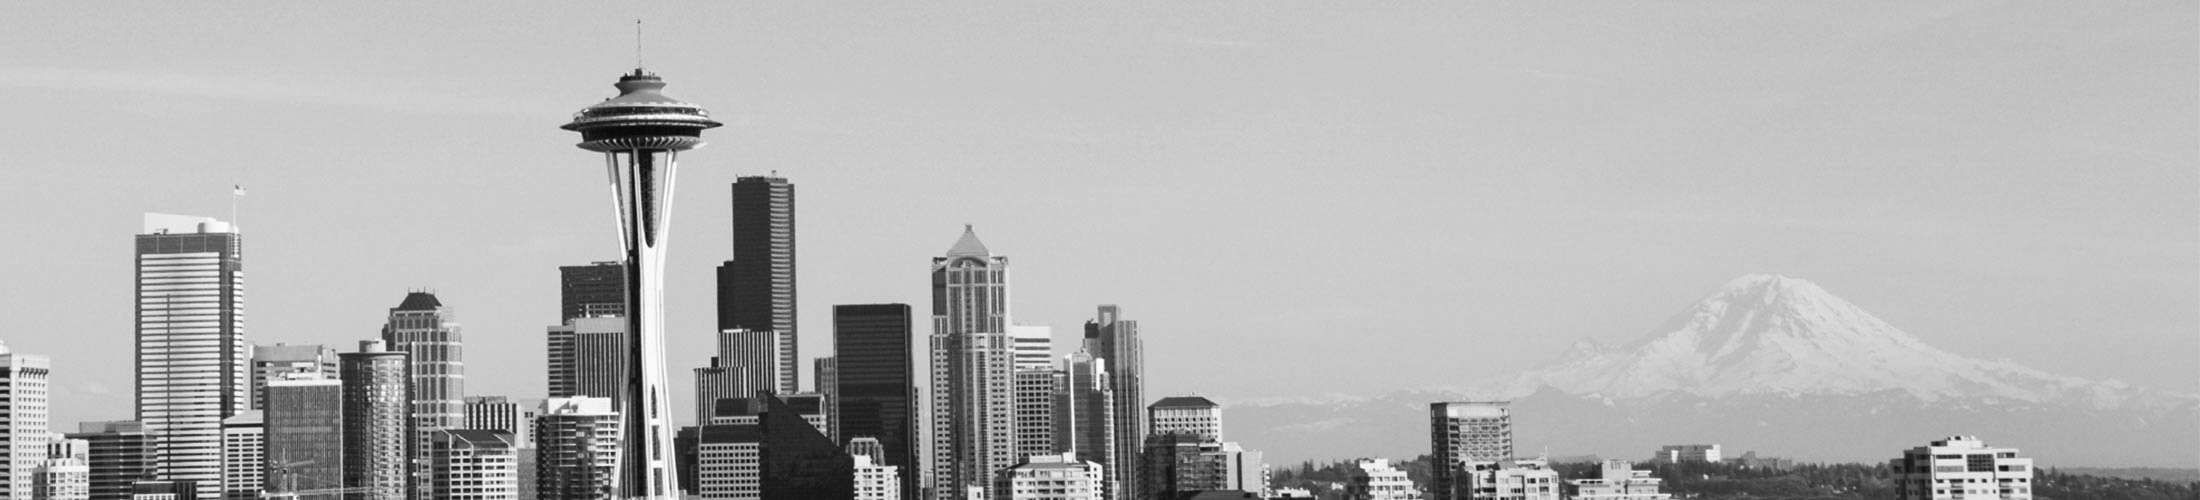 Admissions-About-Seattle-Area-BW